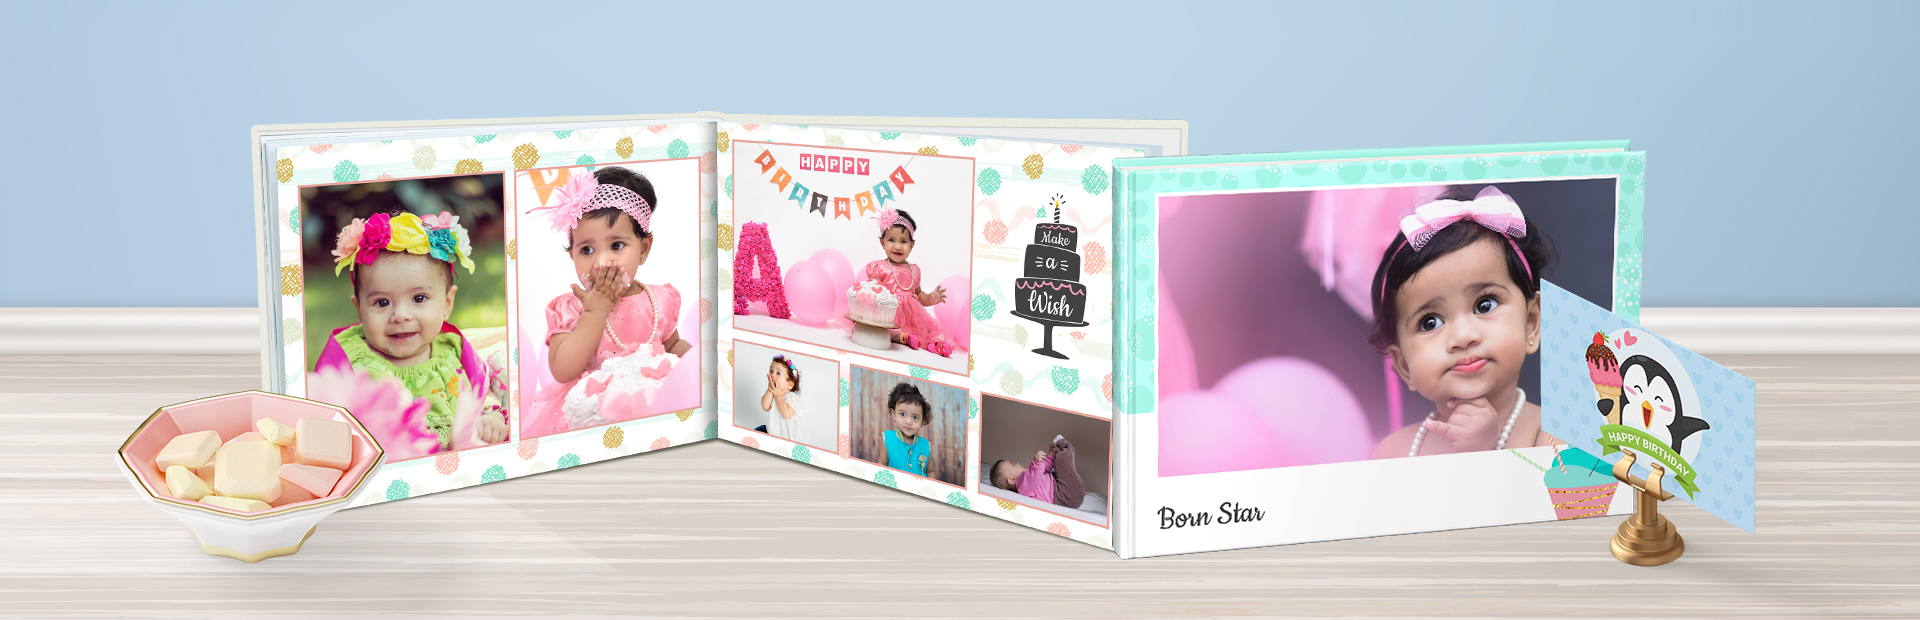 Birthday Twinkle Photo Books Online